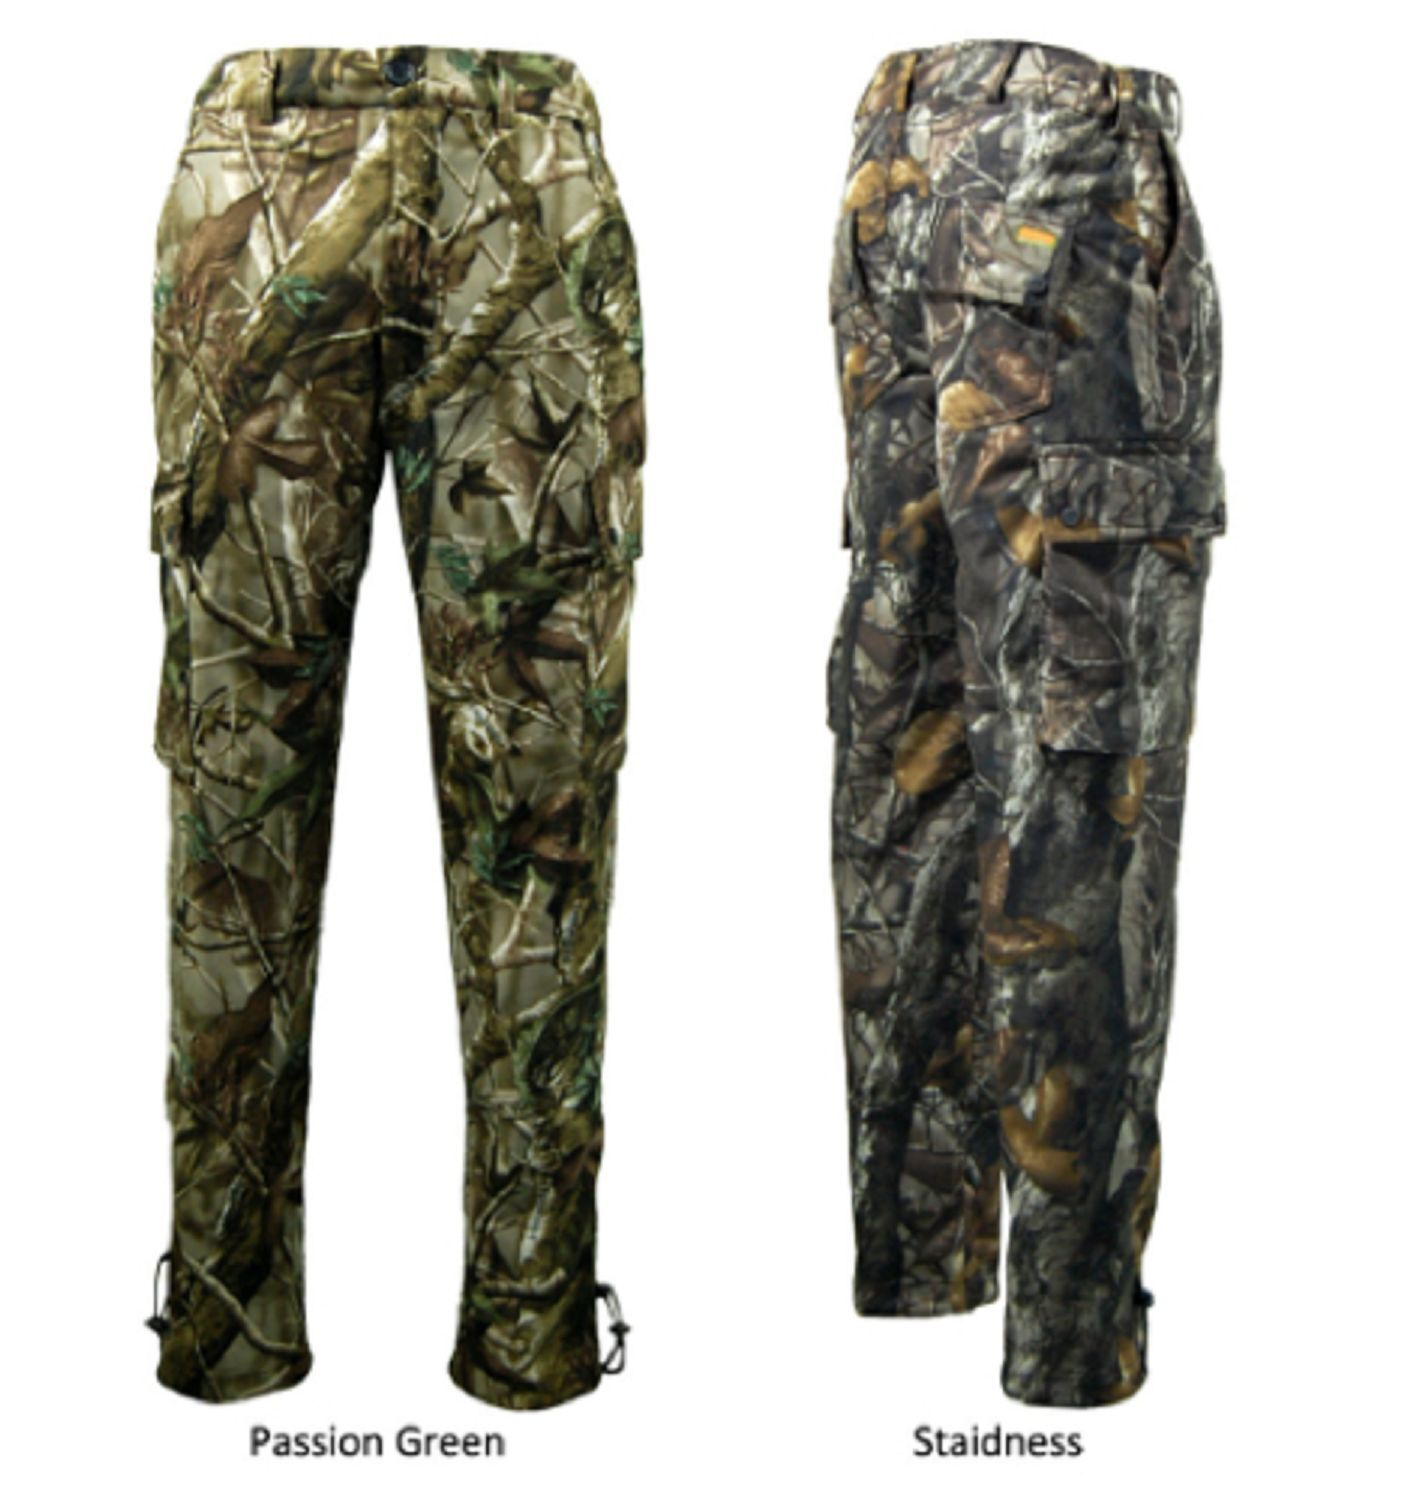 Camouflage Field Stealth Field Camouflage Waterproof Trousers S,M,L,XL,2XL SALE 5% OFF Was 0ad3cc